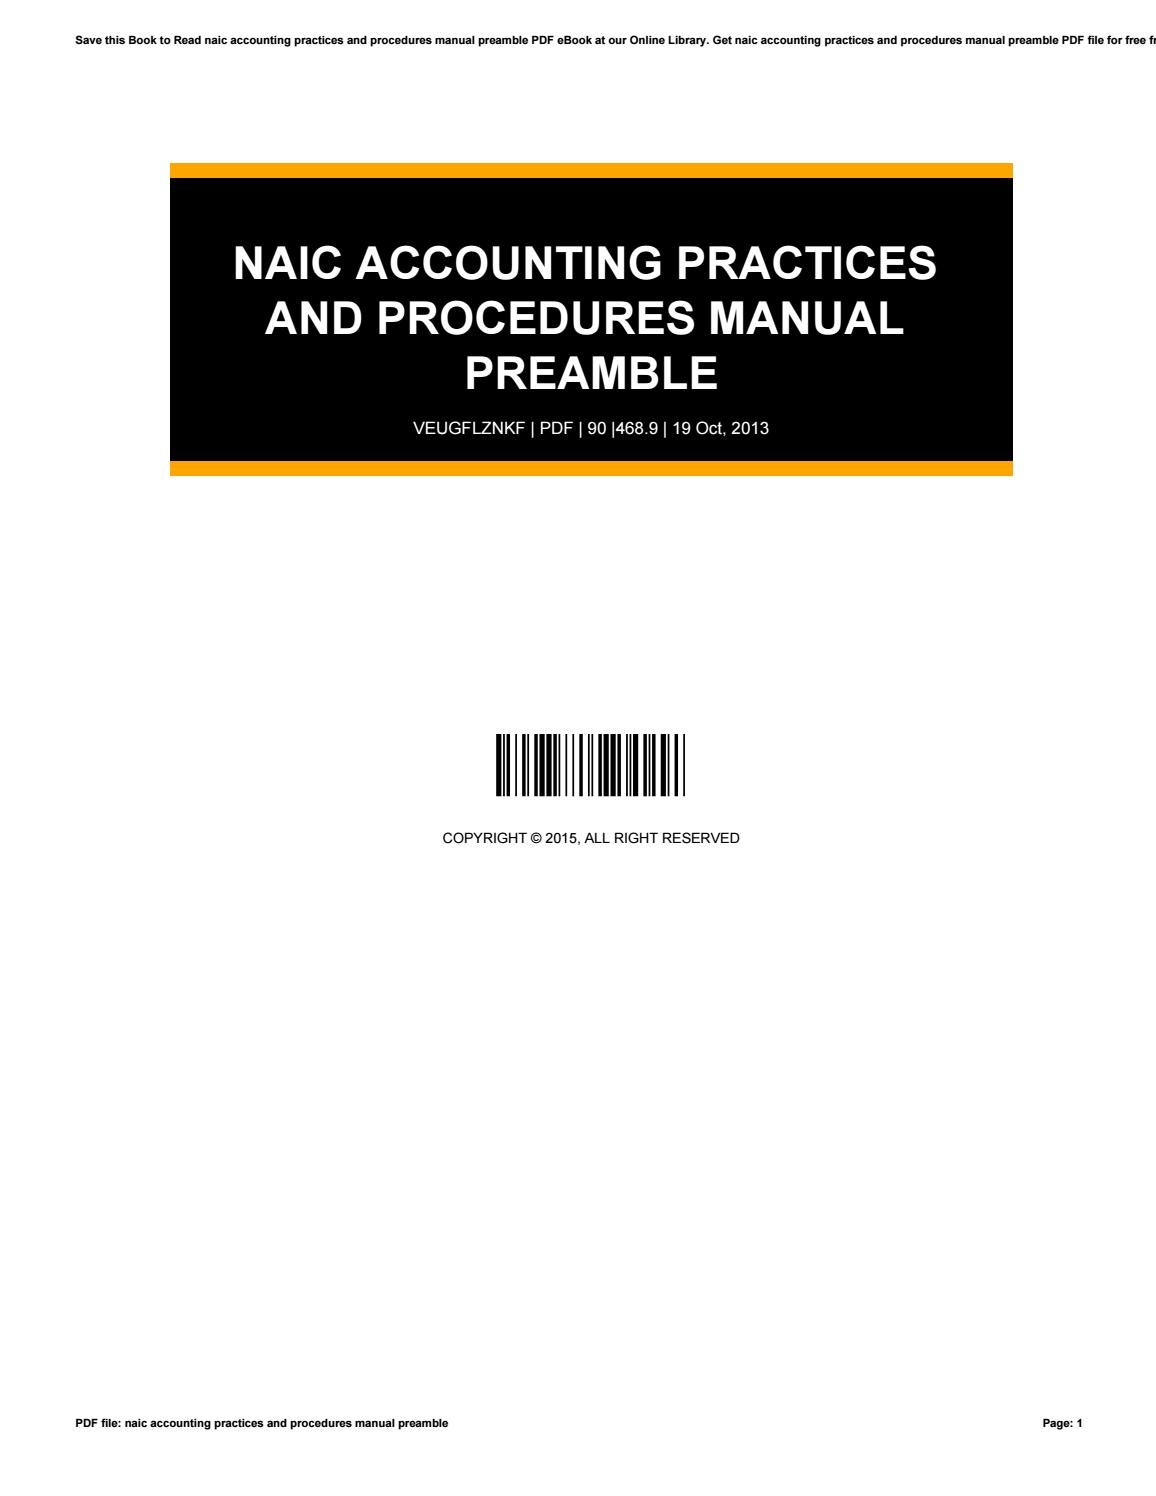 accounting practices and procedures manual